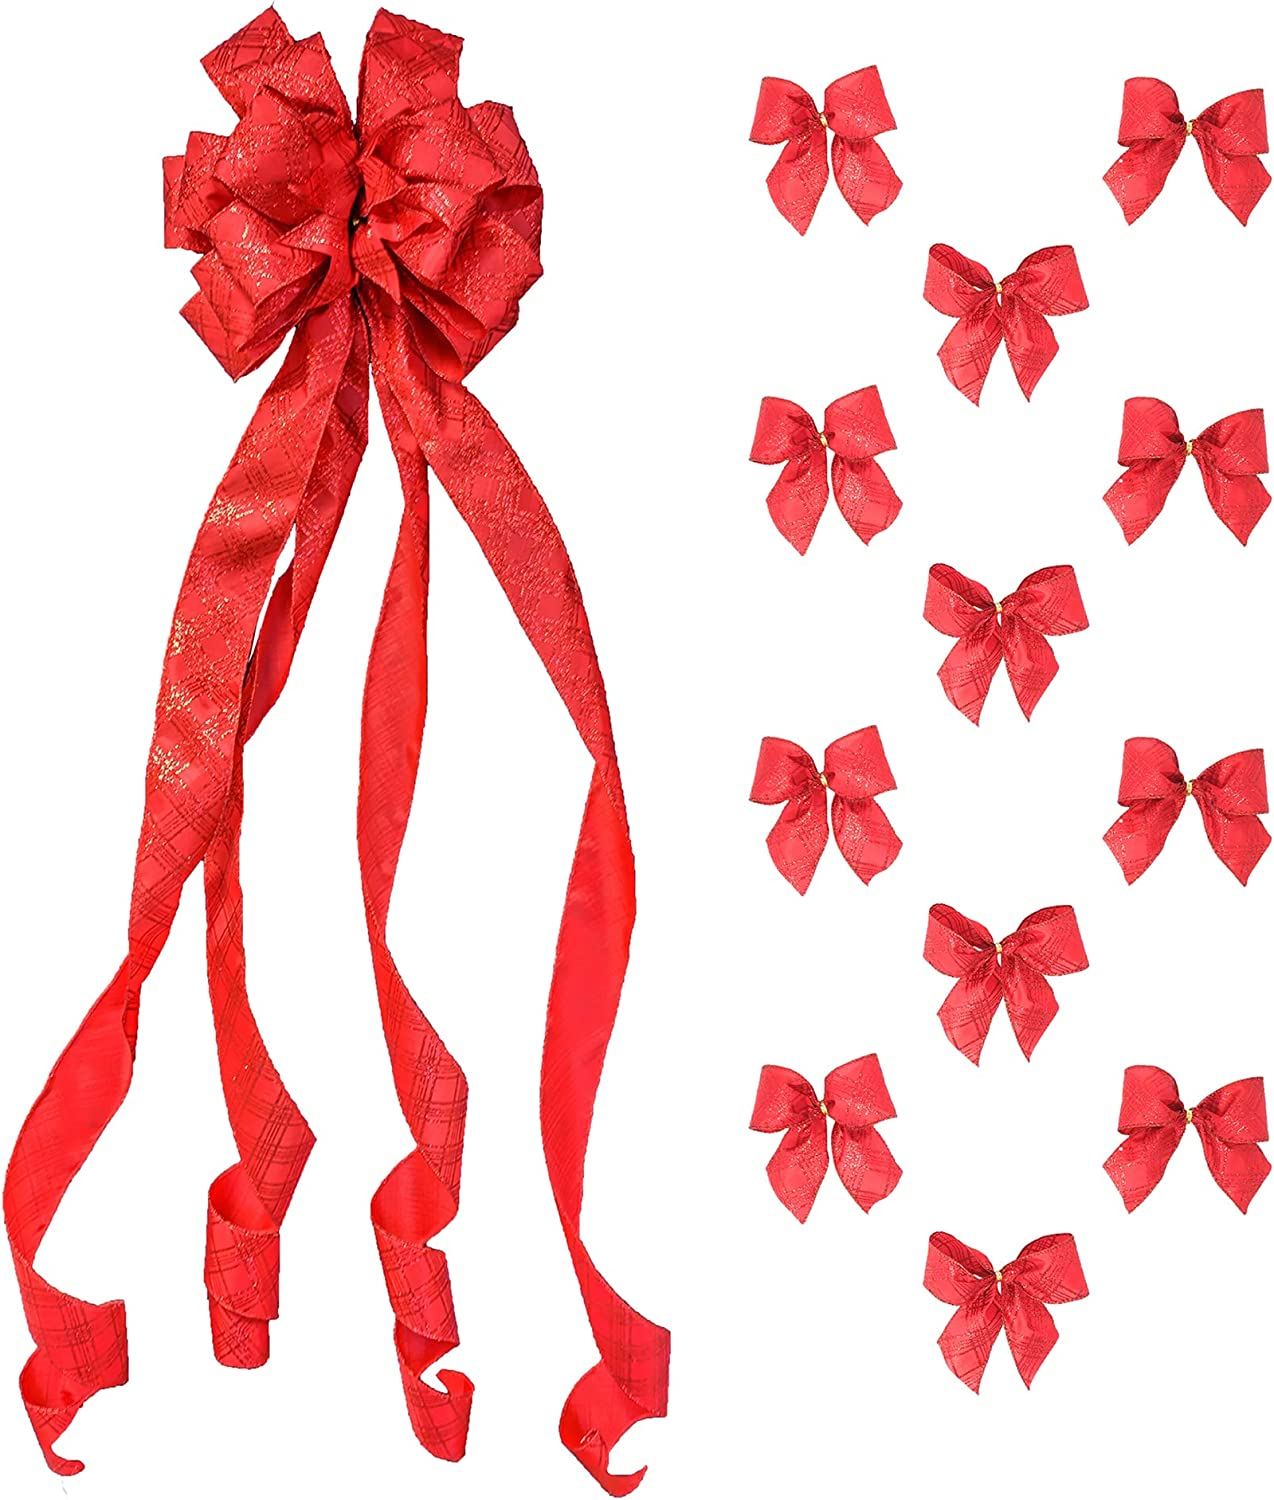 Over the top christmas Bow ott Bow Christmas bow Holiday Bow Christmas over the top Hair Bow Reindeer Ribbon Over the Top bow